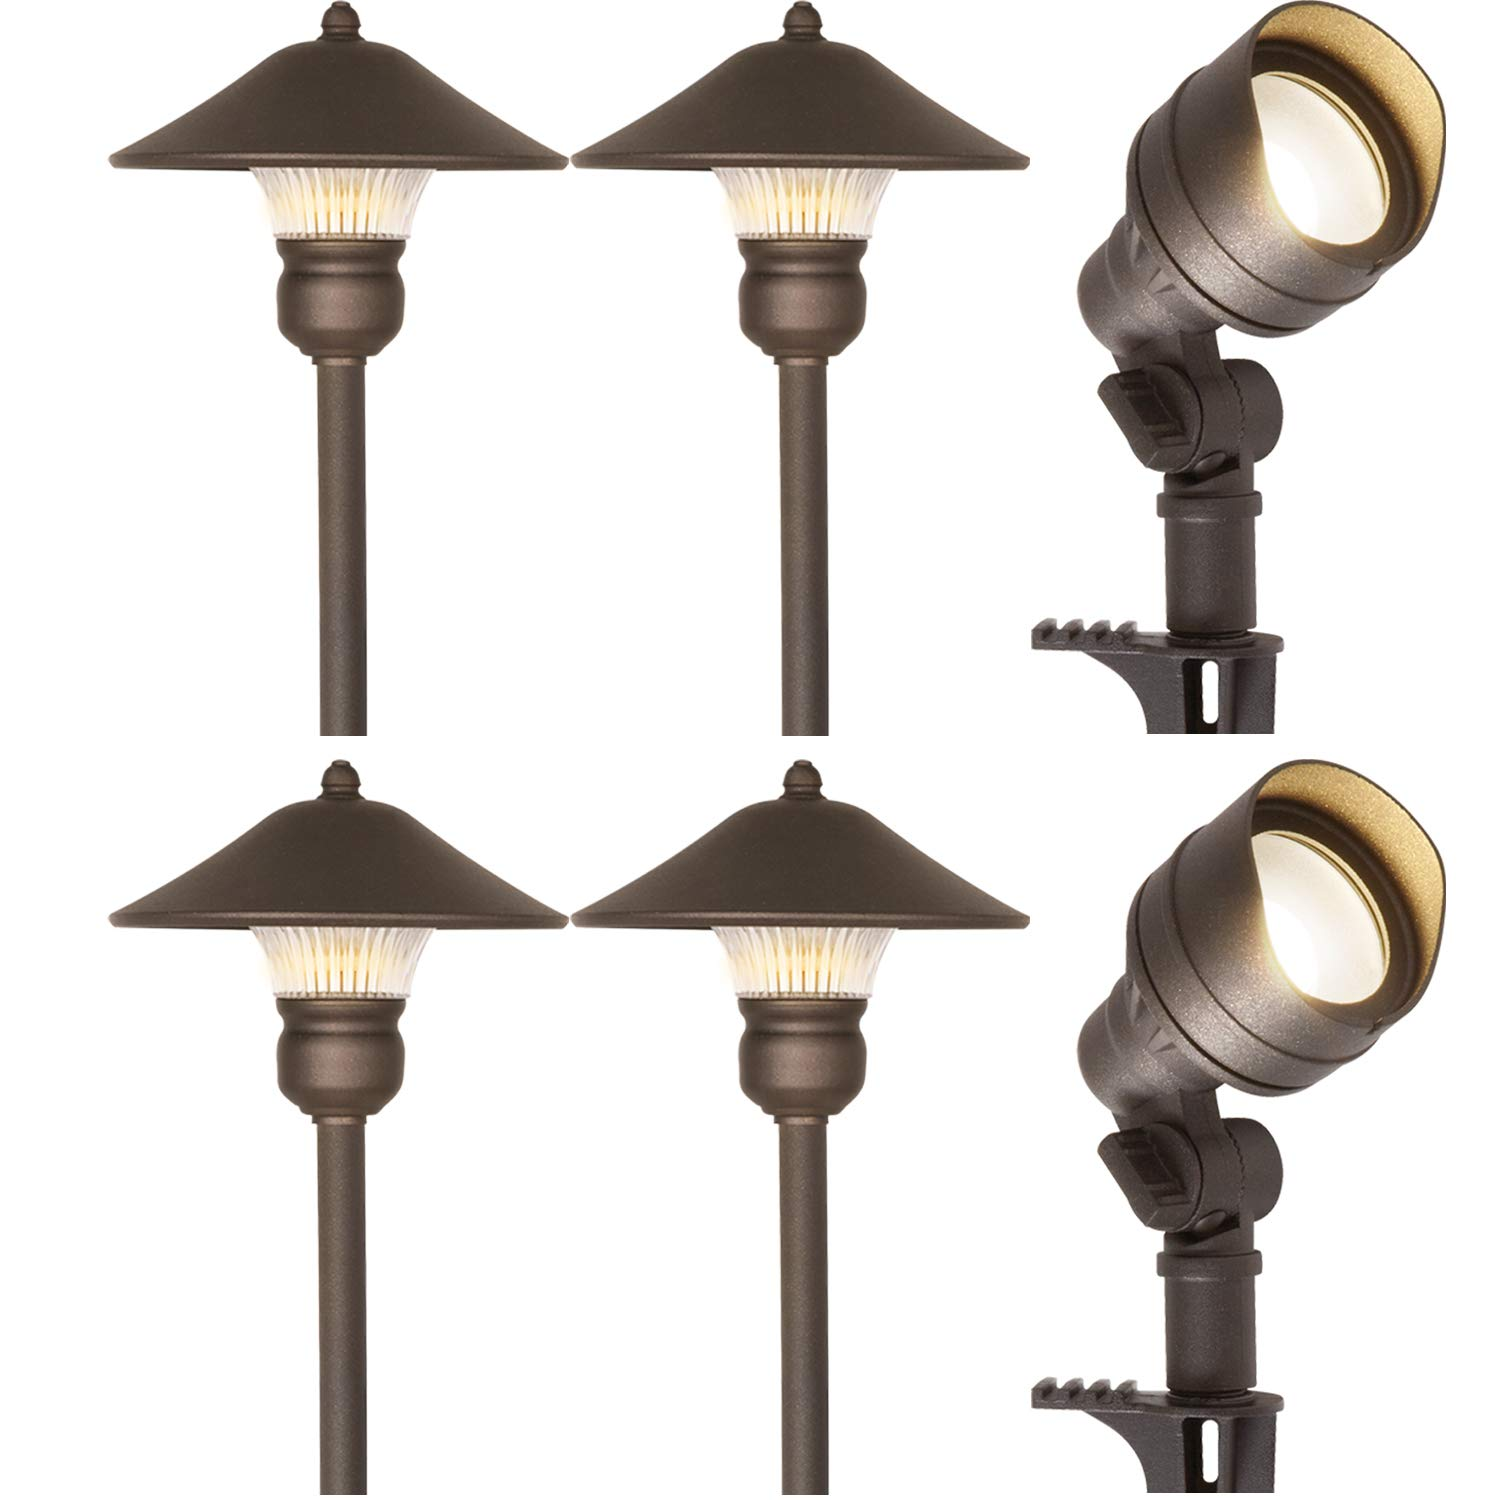 Hykolity 6 Pack Bronze Low Voltage LED Landscape Kits, 12V Pathway Flood Light Kits, 4.5W 205LM and 3W 150LM Wired for Outdoor Yard Lawn, Die-cast Aluminum, 30W And 30W Equivalent, 15-Year Lifespan